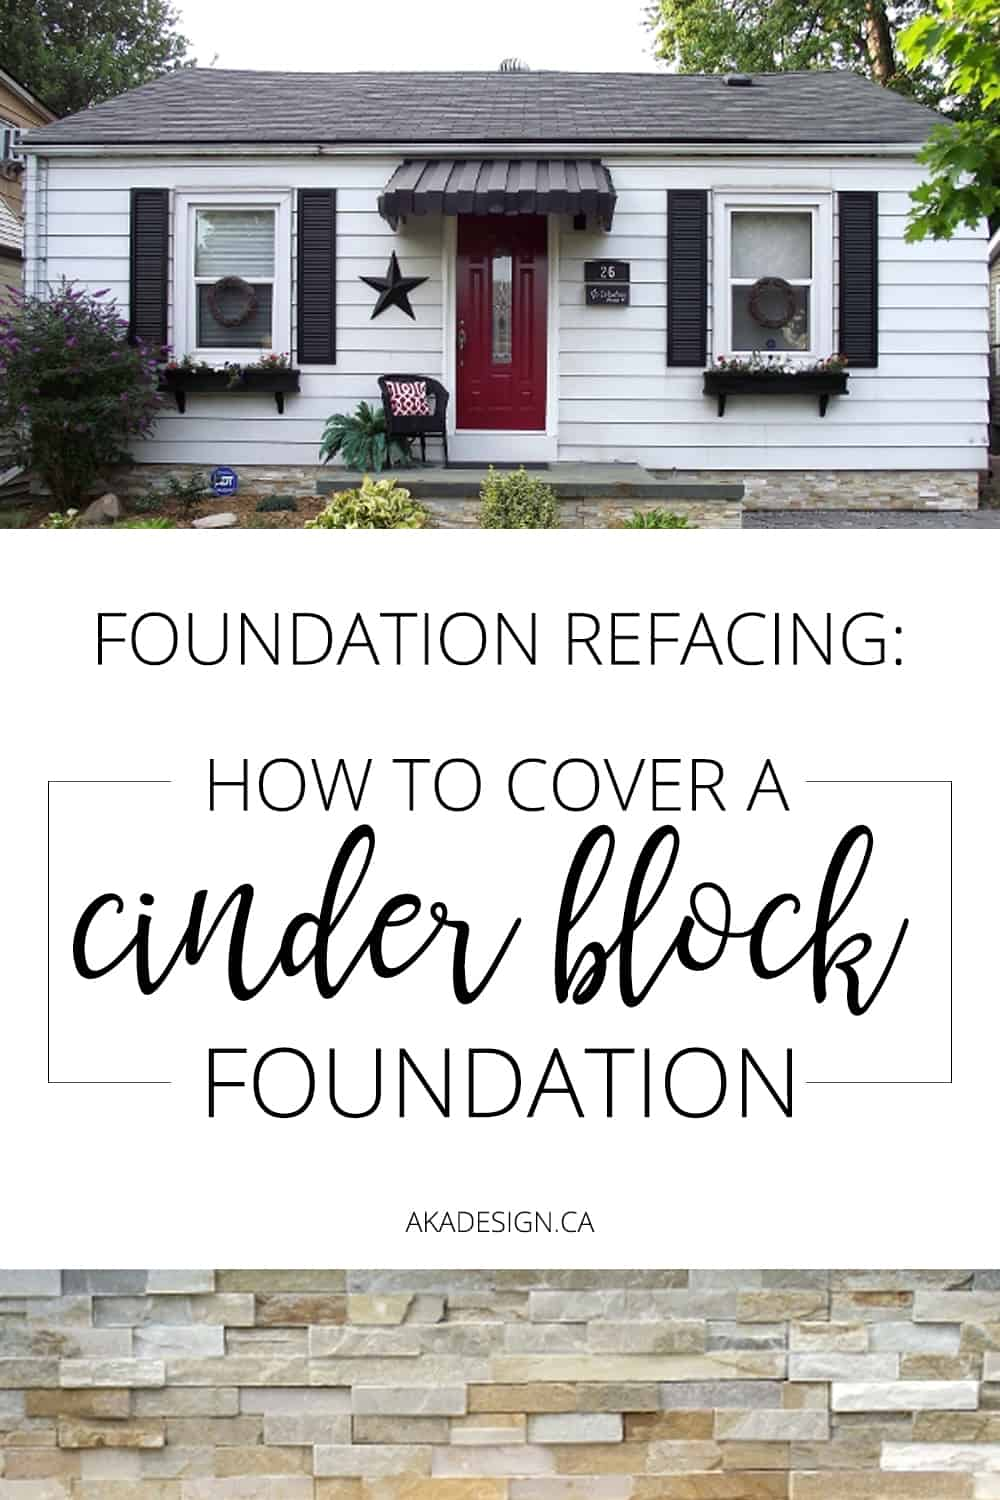 Foundation Refacing How To Cover A Cinder Block Foundation